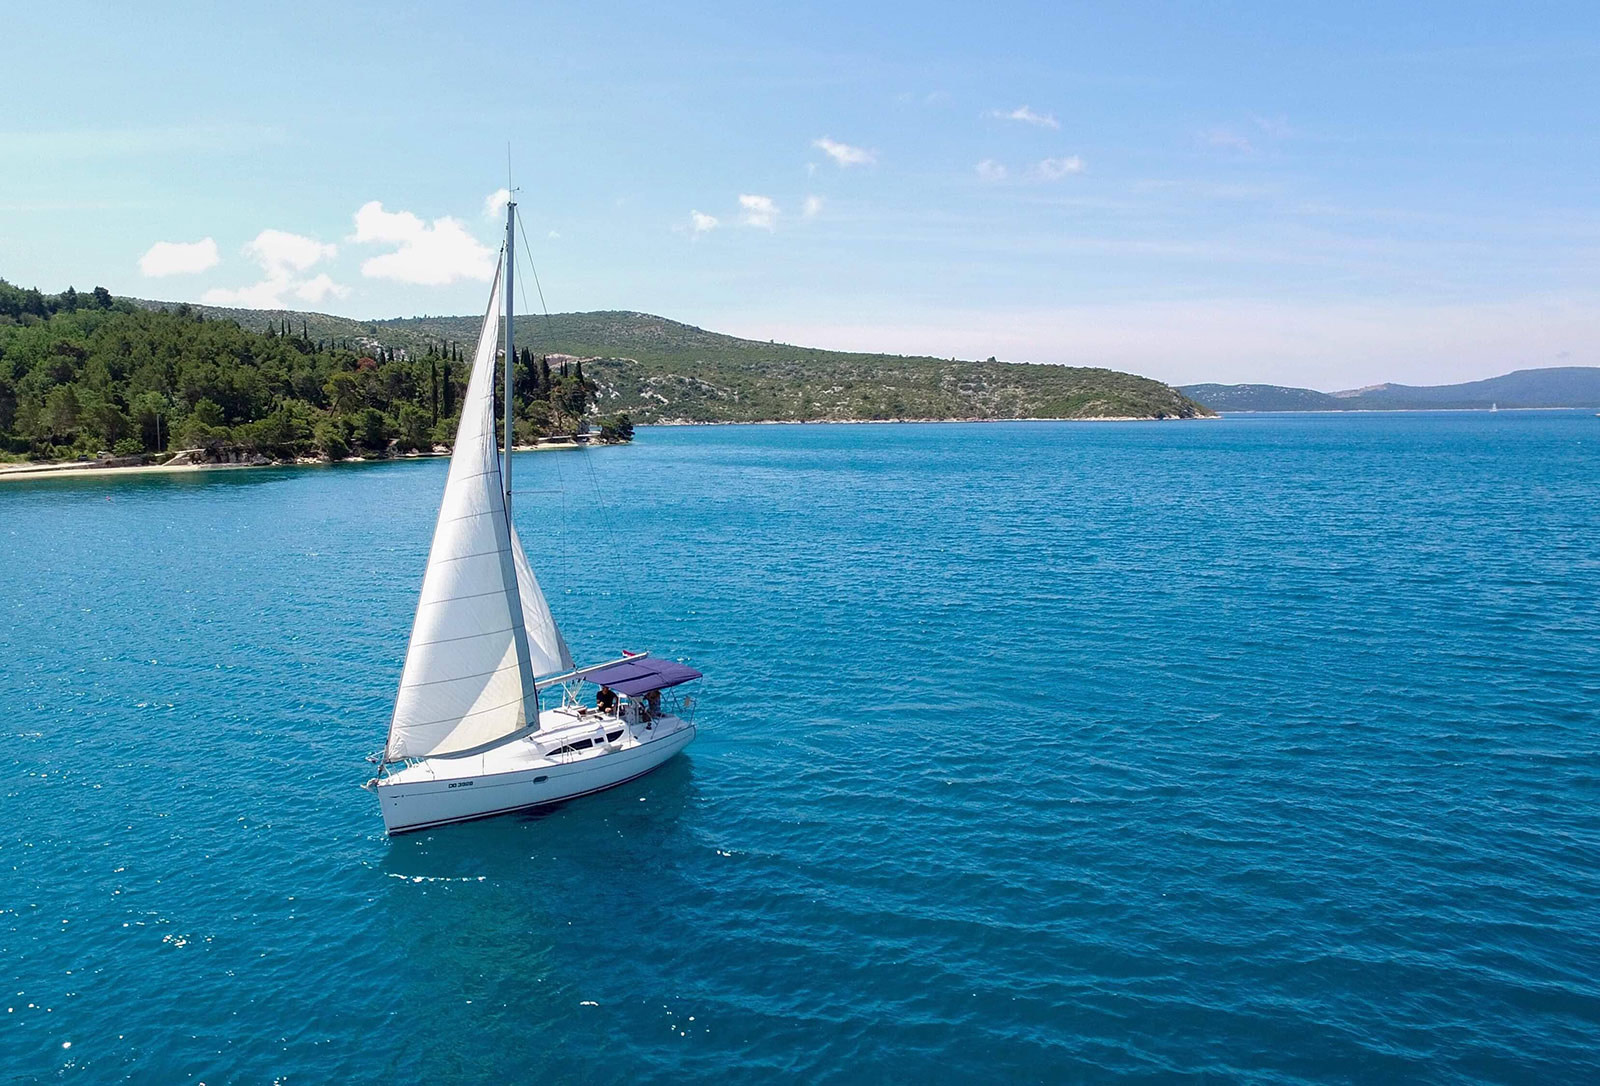 Birds view of a Sun Odyssey 32 sailing in Croatia